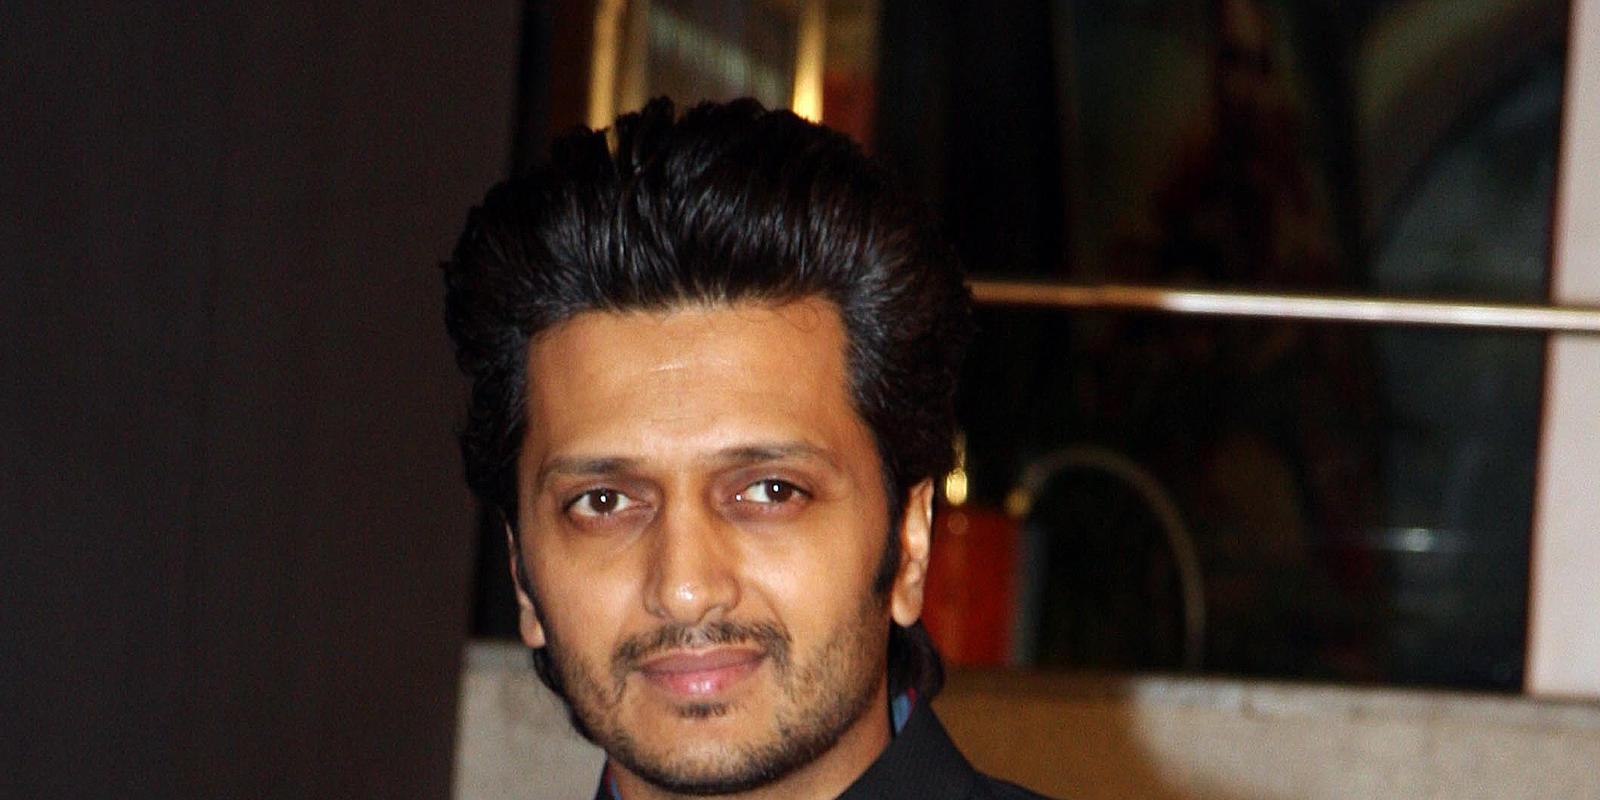 riteish deshmukh: 'ek villain role is the most exciting of my career'